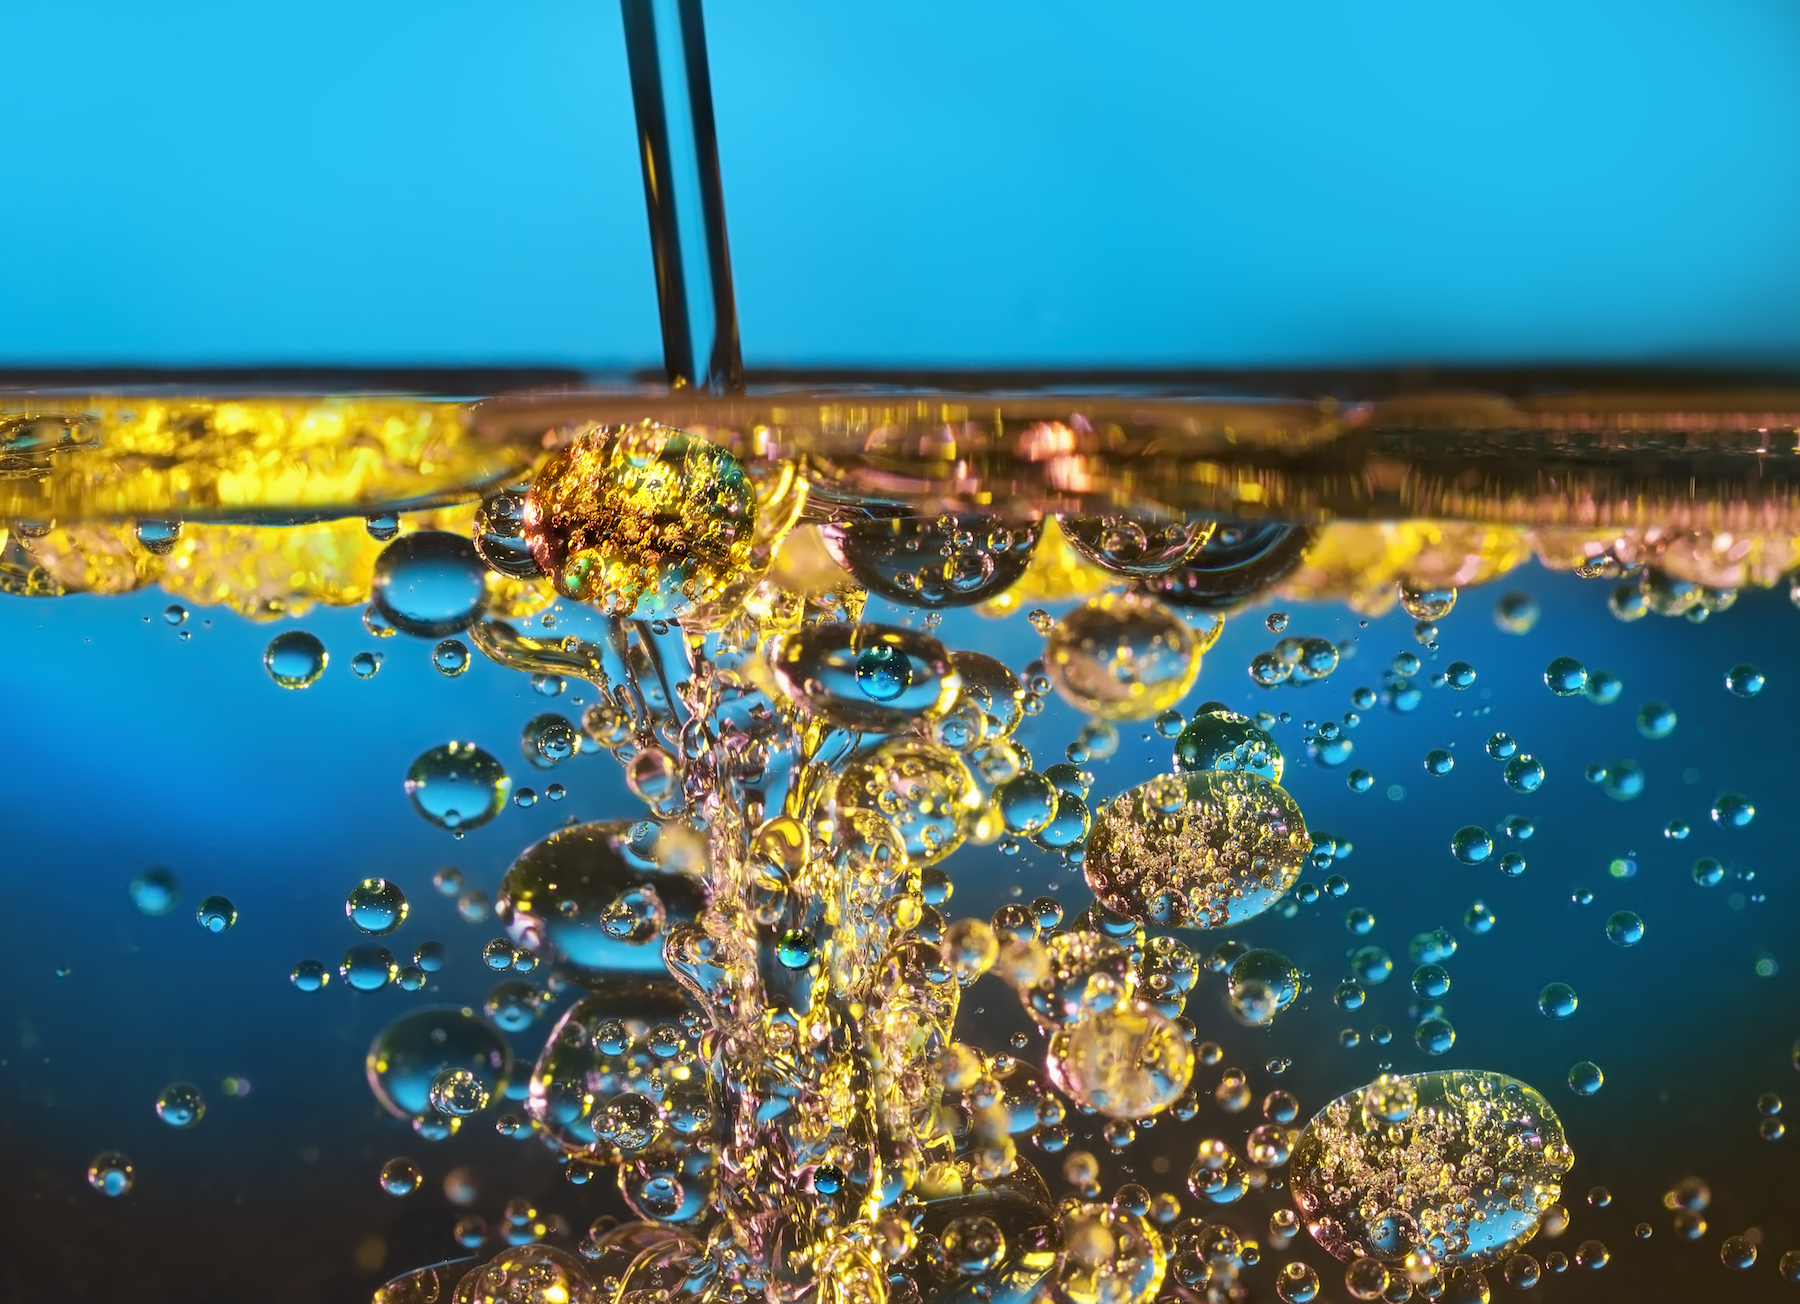 Researchers from MIT have created a new process to mix oil and water that remains stable for an extended period of time.